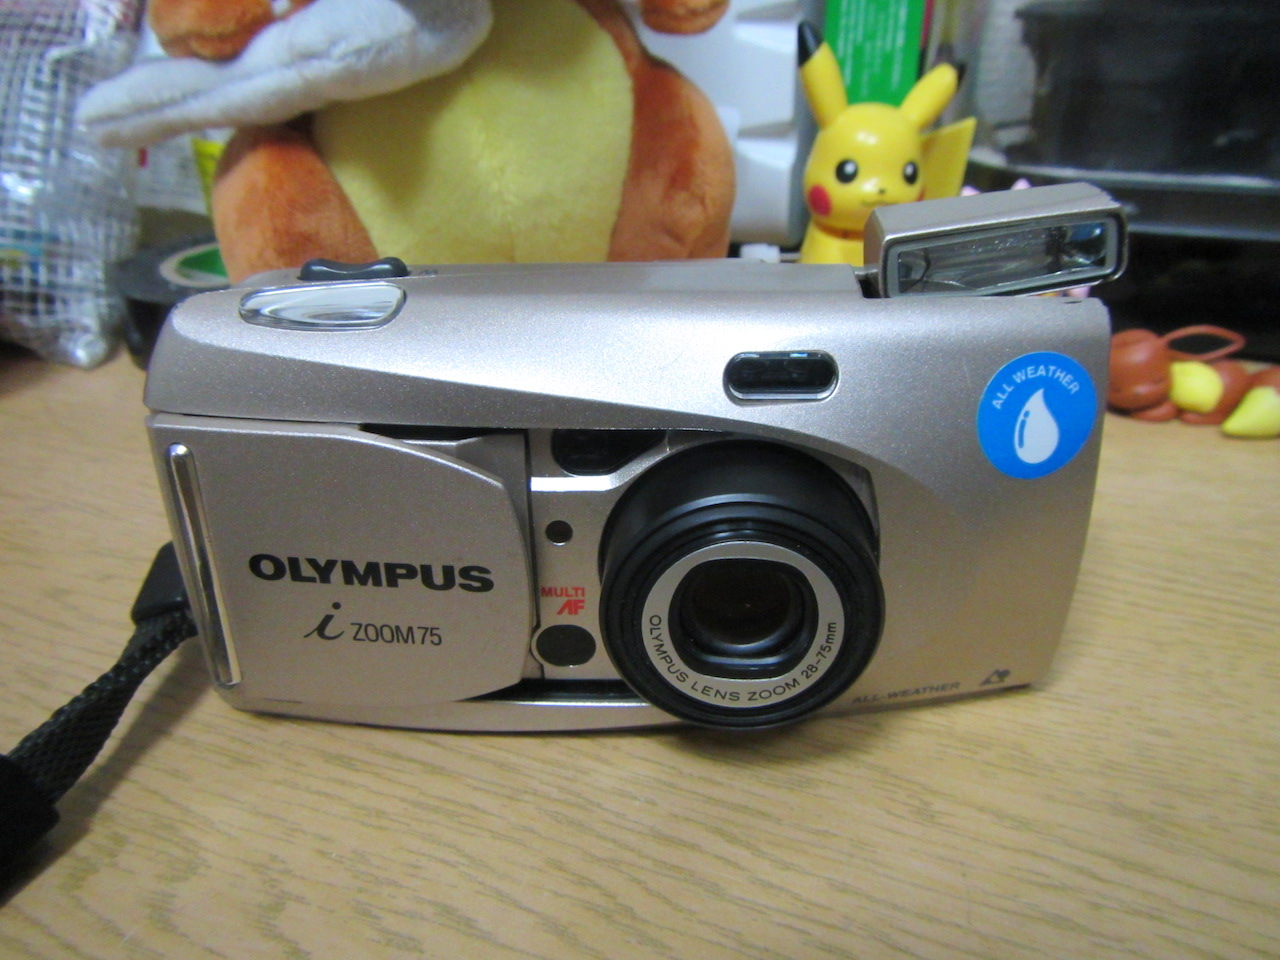 Olympus izoom 75 APS